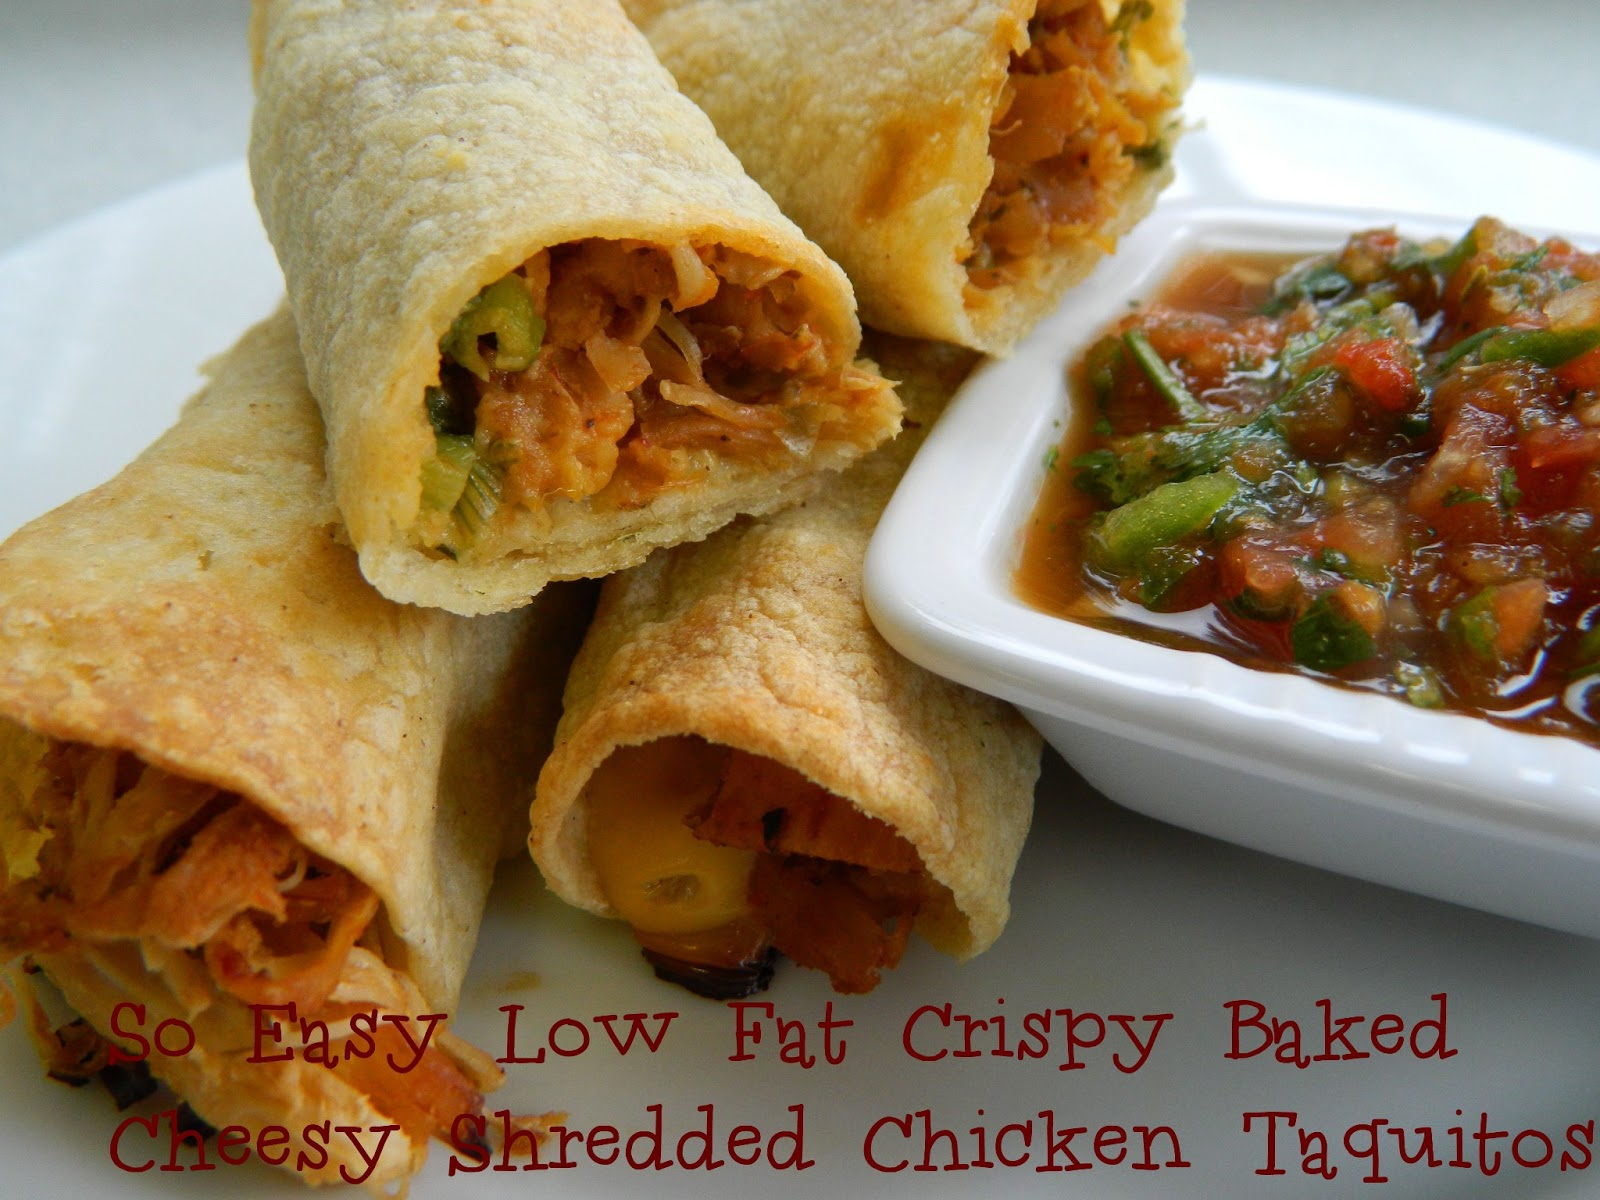 Top low fat shredded chicken recipes and other great tasting recipes with a healthy slant from cemeshaiti.tk Member Recipes for Low Fat Shredded Chicken. Very Good /5 (6 ratings) Slow Cooker Chicken Taco Soup. Spicy, delicious & so easy! Submitted by: LAINAMO.